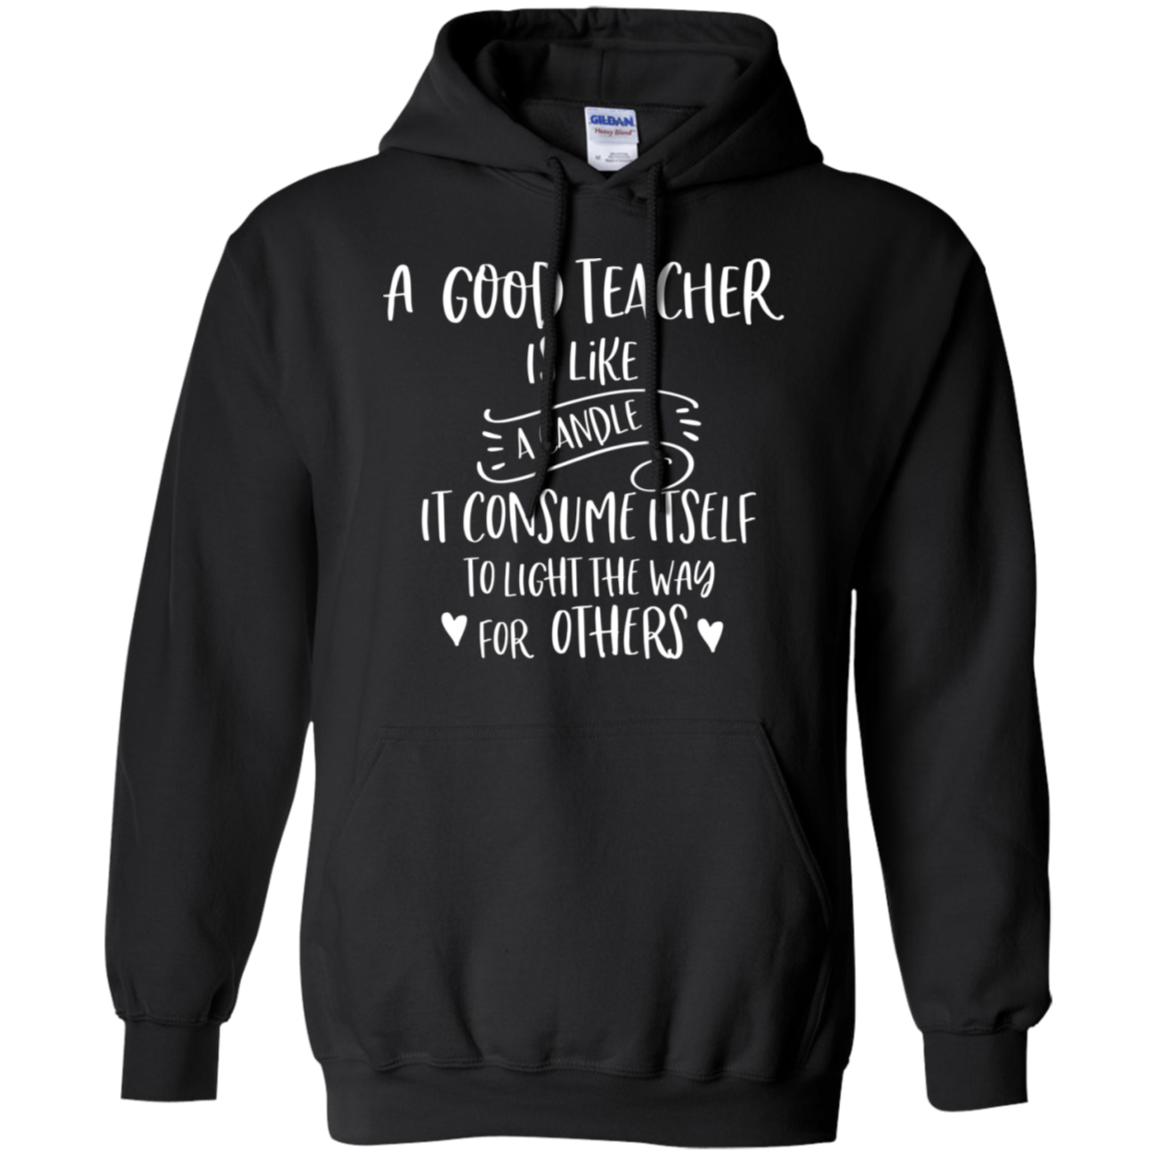 A good teacher is like a candle  Pullover Hoodie 8 oz.